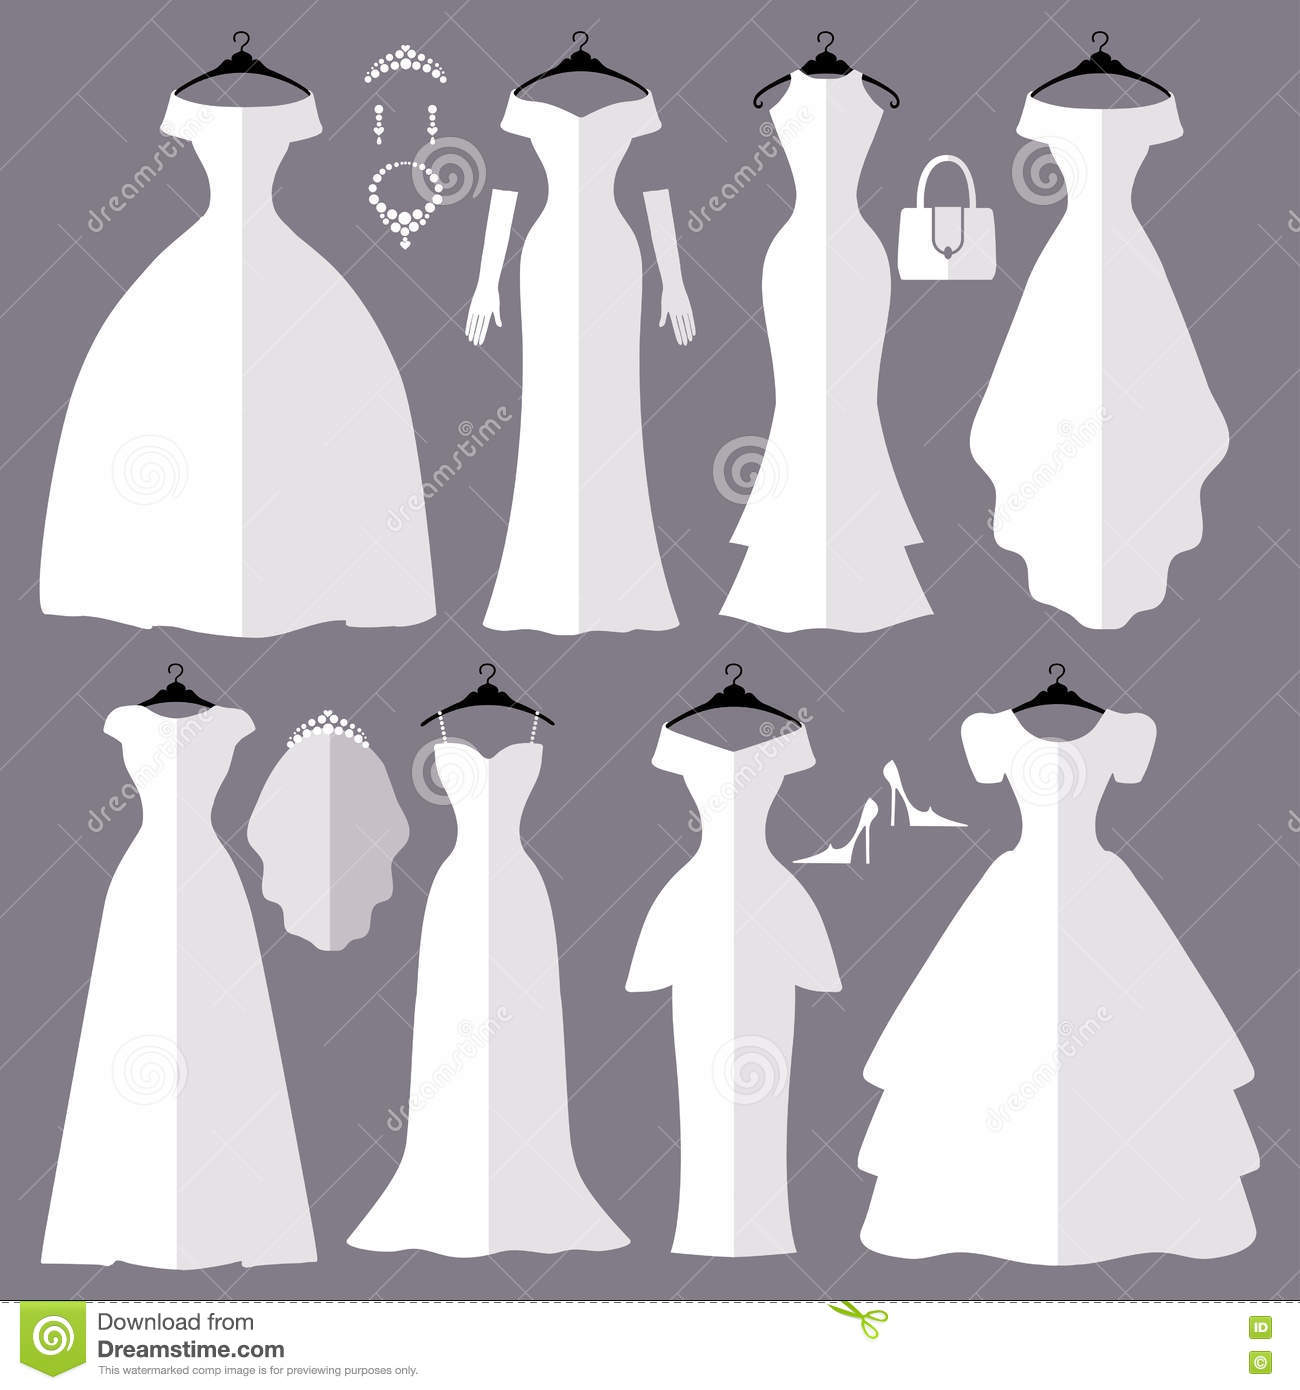 72da1b1833c Wedding dresses in Different styles.Flat icons.Fashion bride Dress made in  modern style.White dress